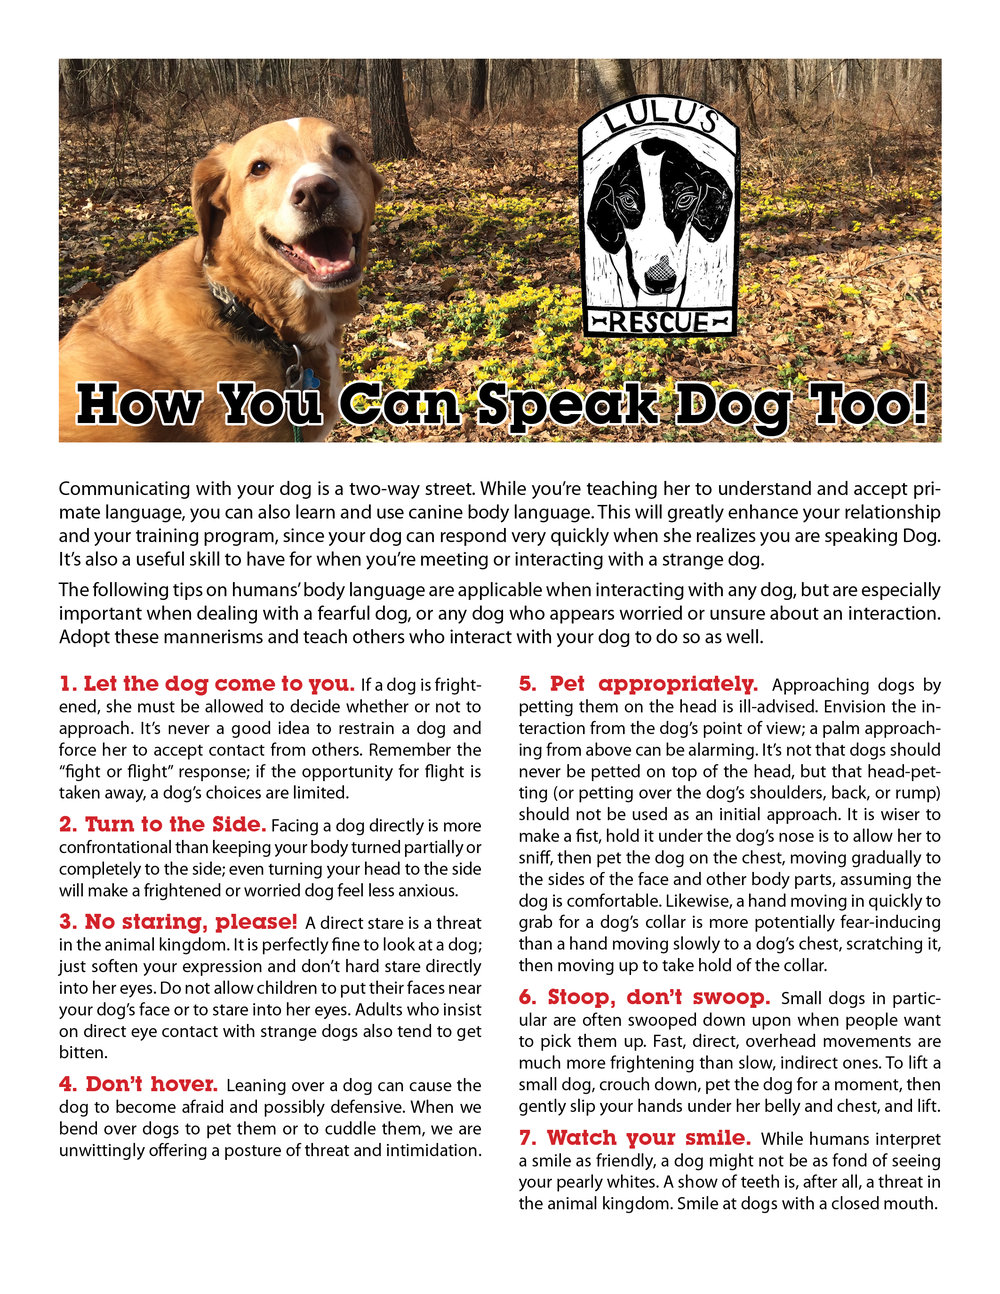 how you can speak dog too